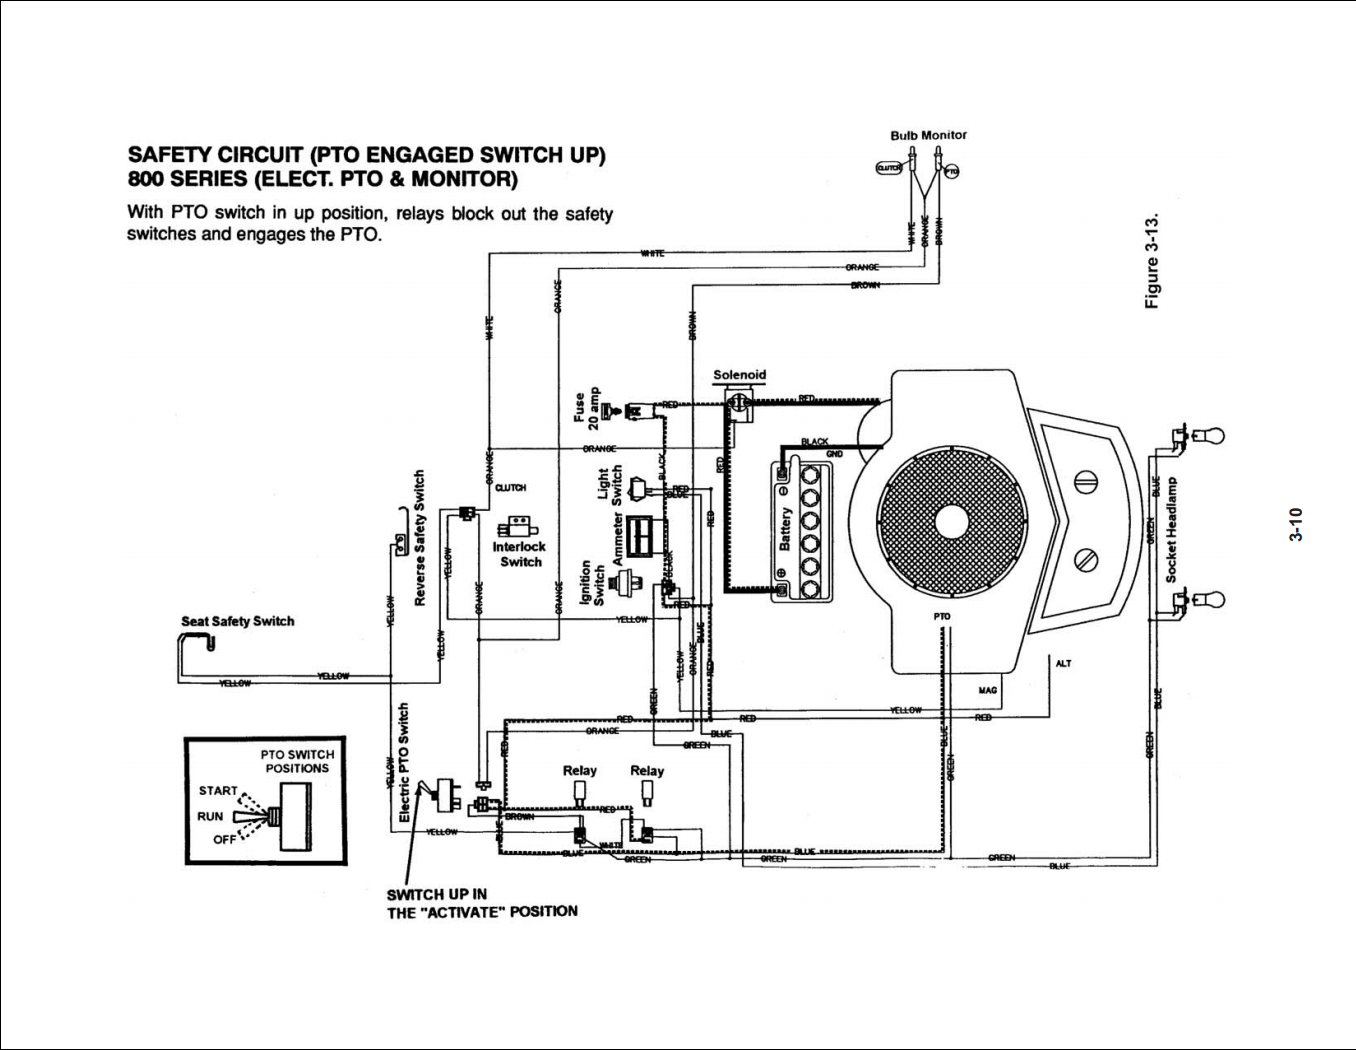 Cub Cadet Wire Diagram For 2000 Wiring Schematics Model 2135 Gt2550 Content Resource Of U2022 1450